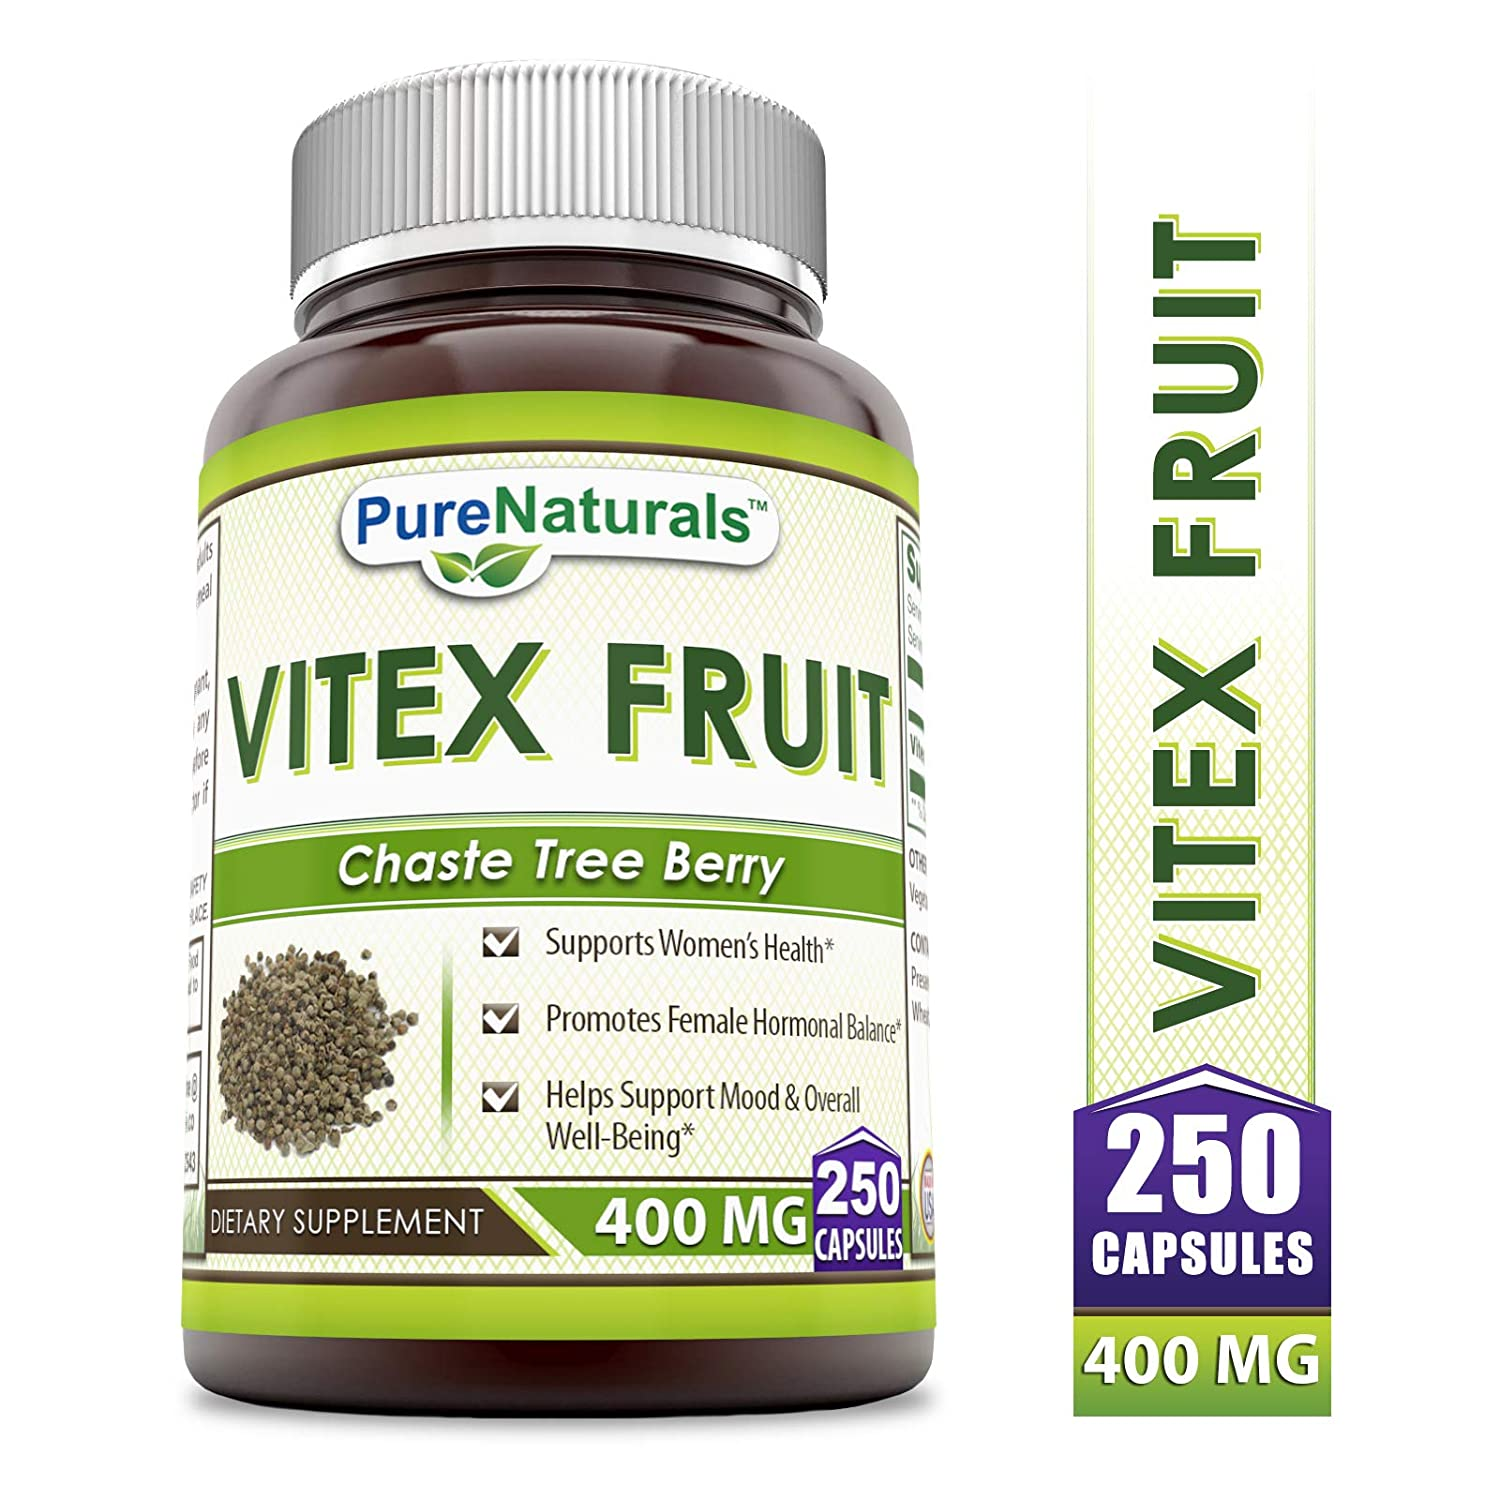 Pure Naturals Vitex Fruit 400 Mg 250 Capsules -Supports Women s Health* -Promotes Female Hormonal Balance* -Helps Support Mood Overall Well-Being